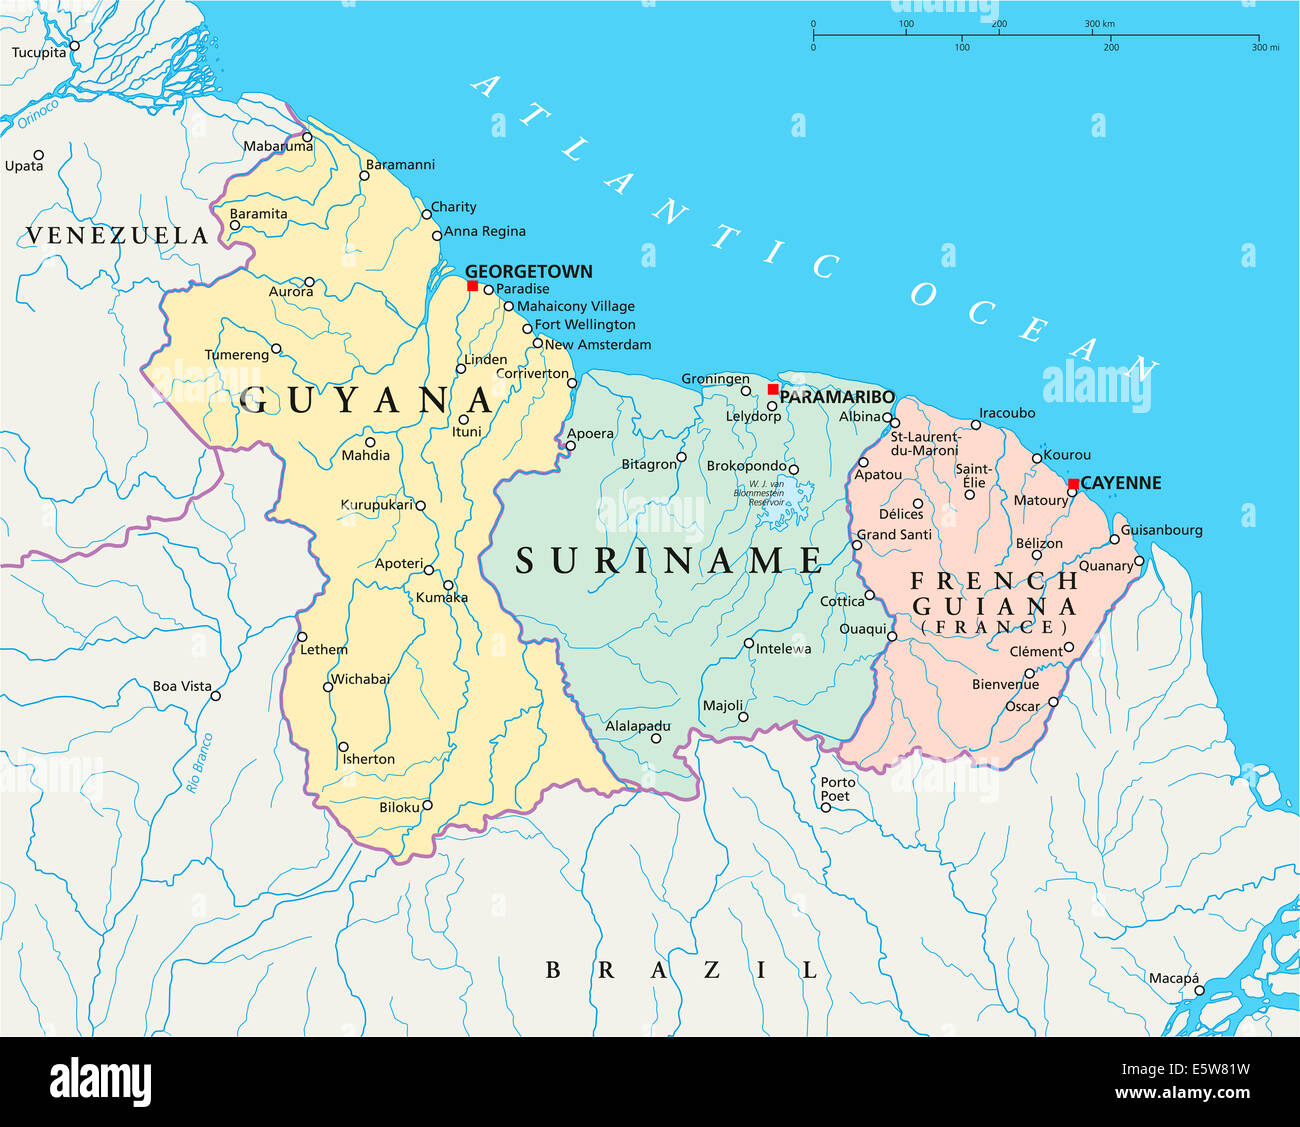 Guyana Suriname and French Guiana Political Map Stock Photo